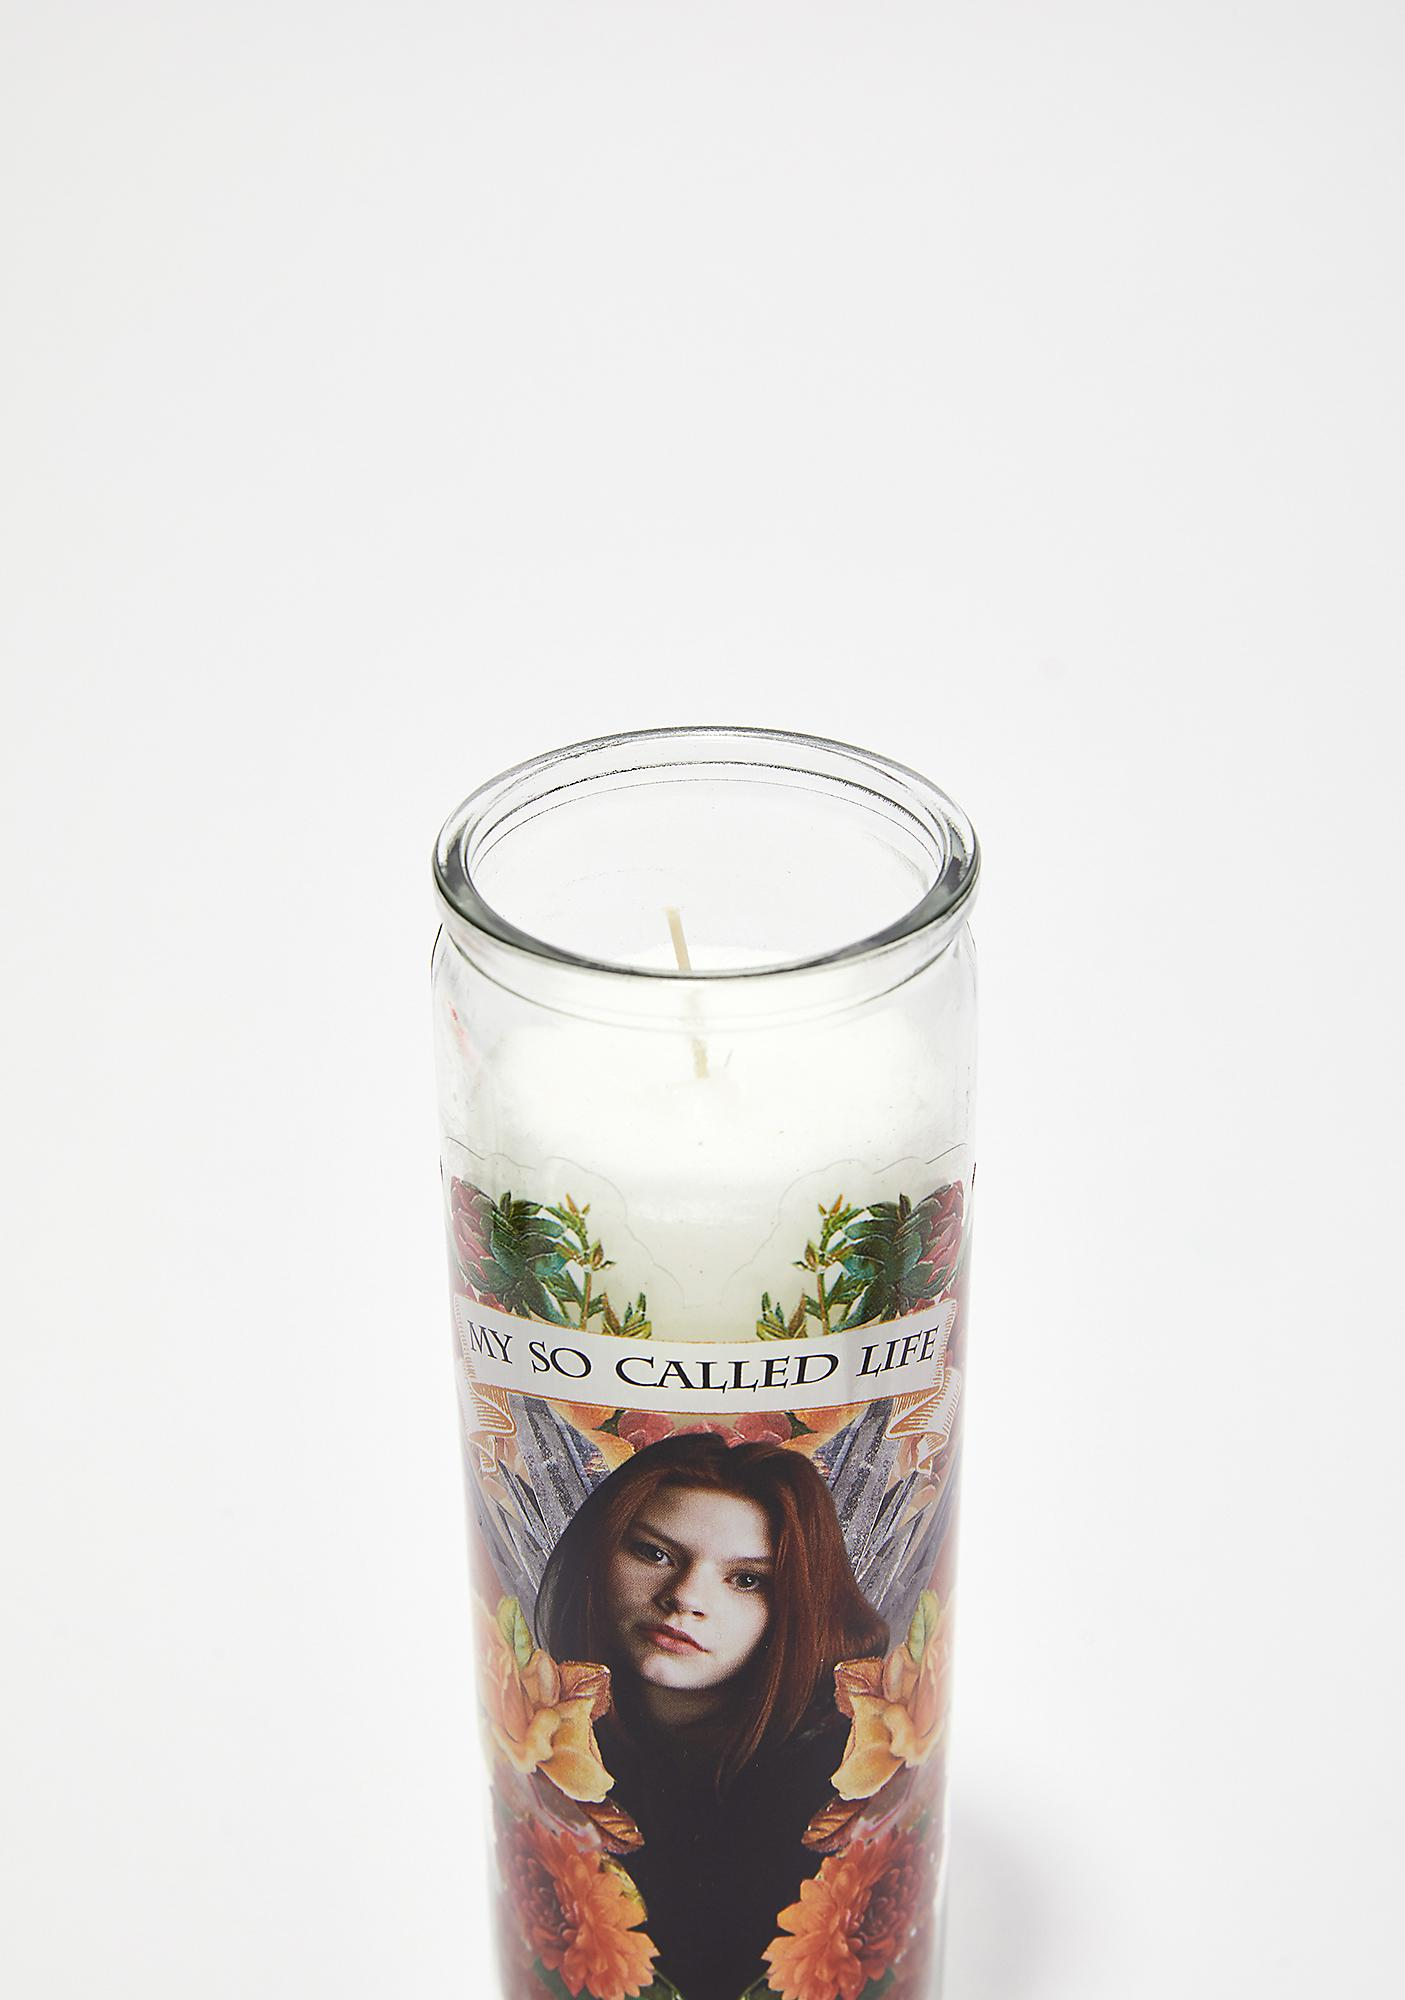 Last Craft My So Called Life Alter Candle